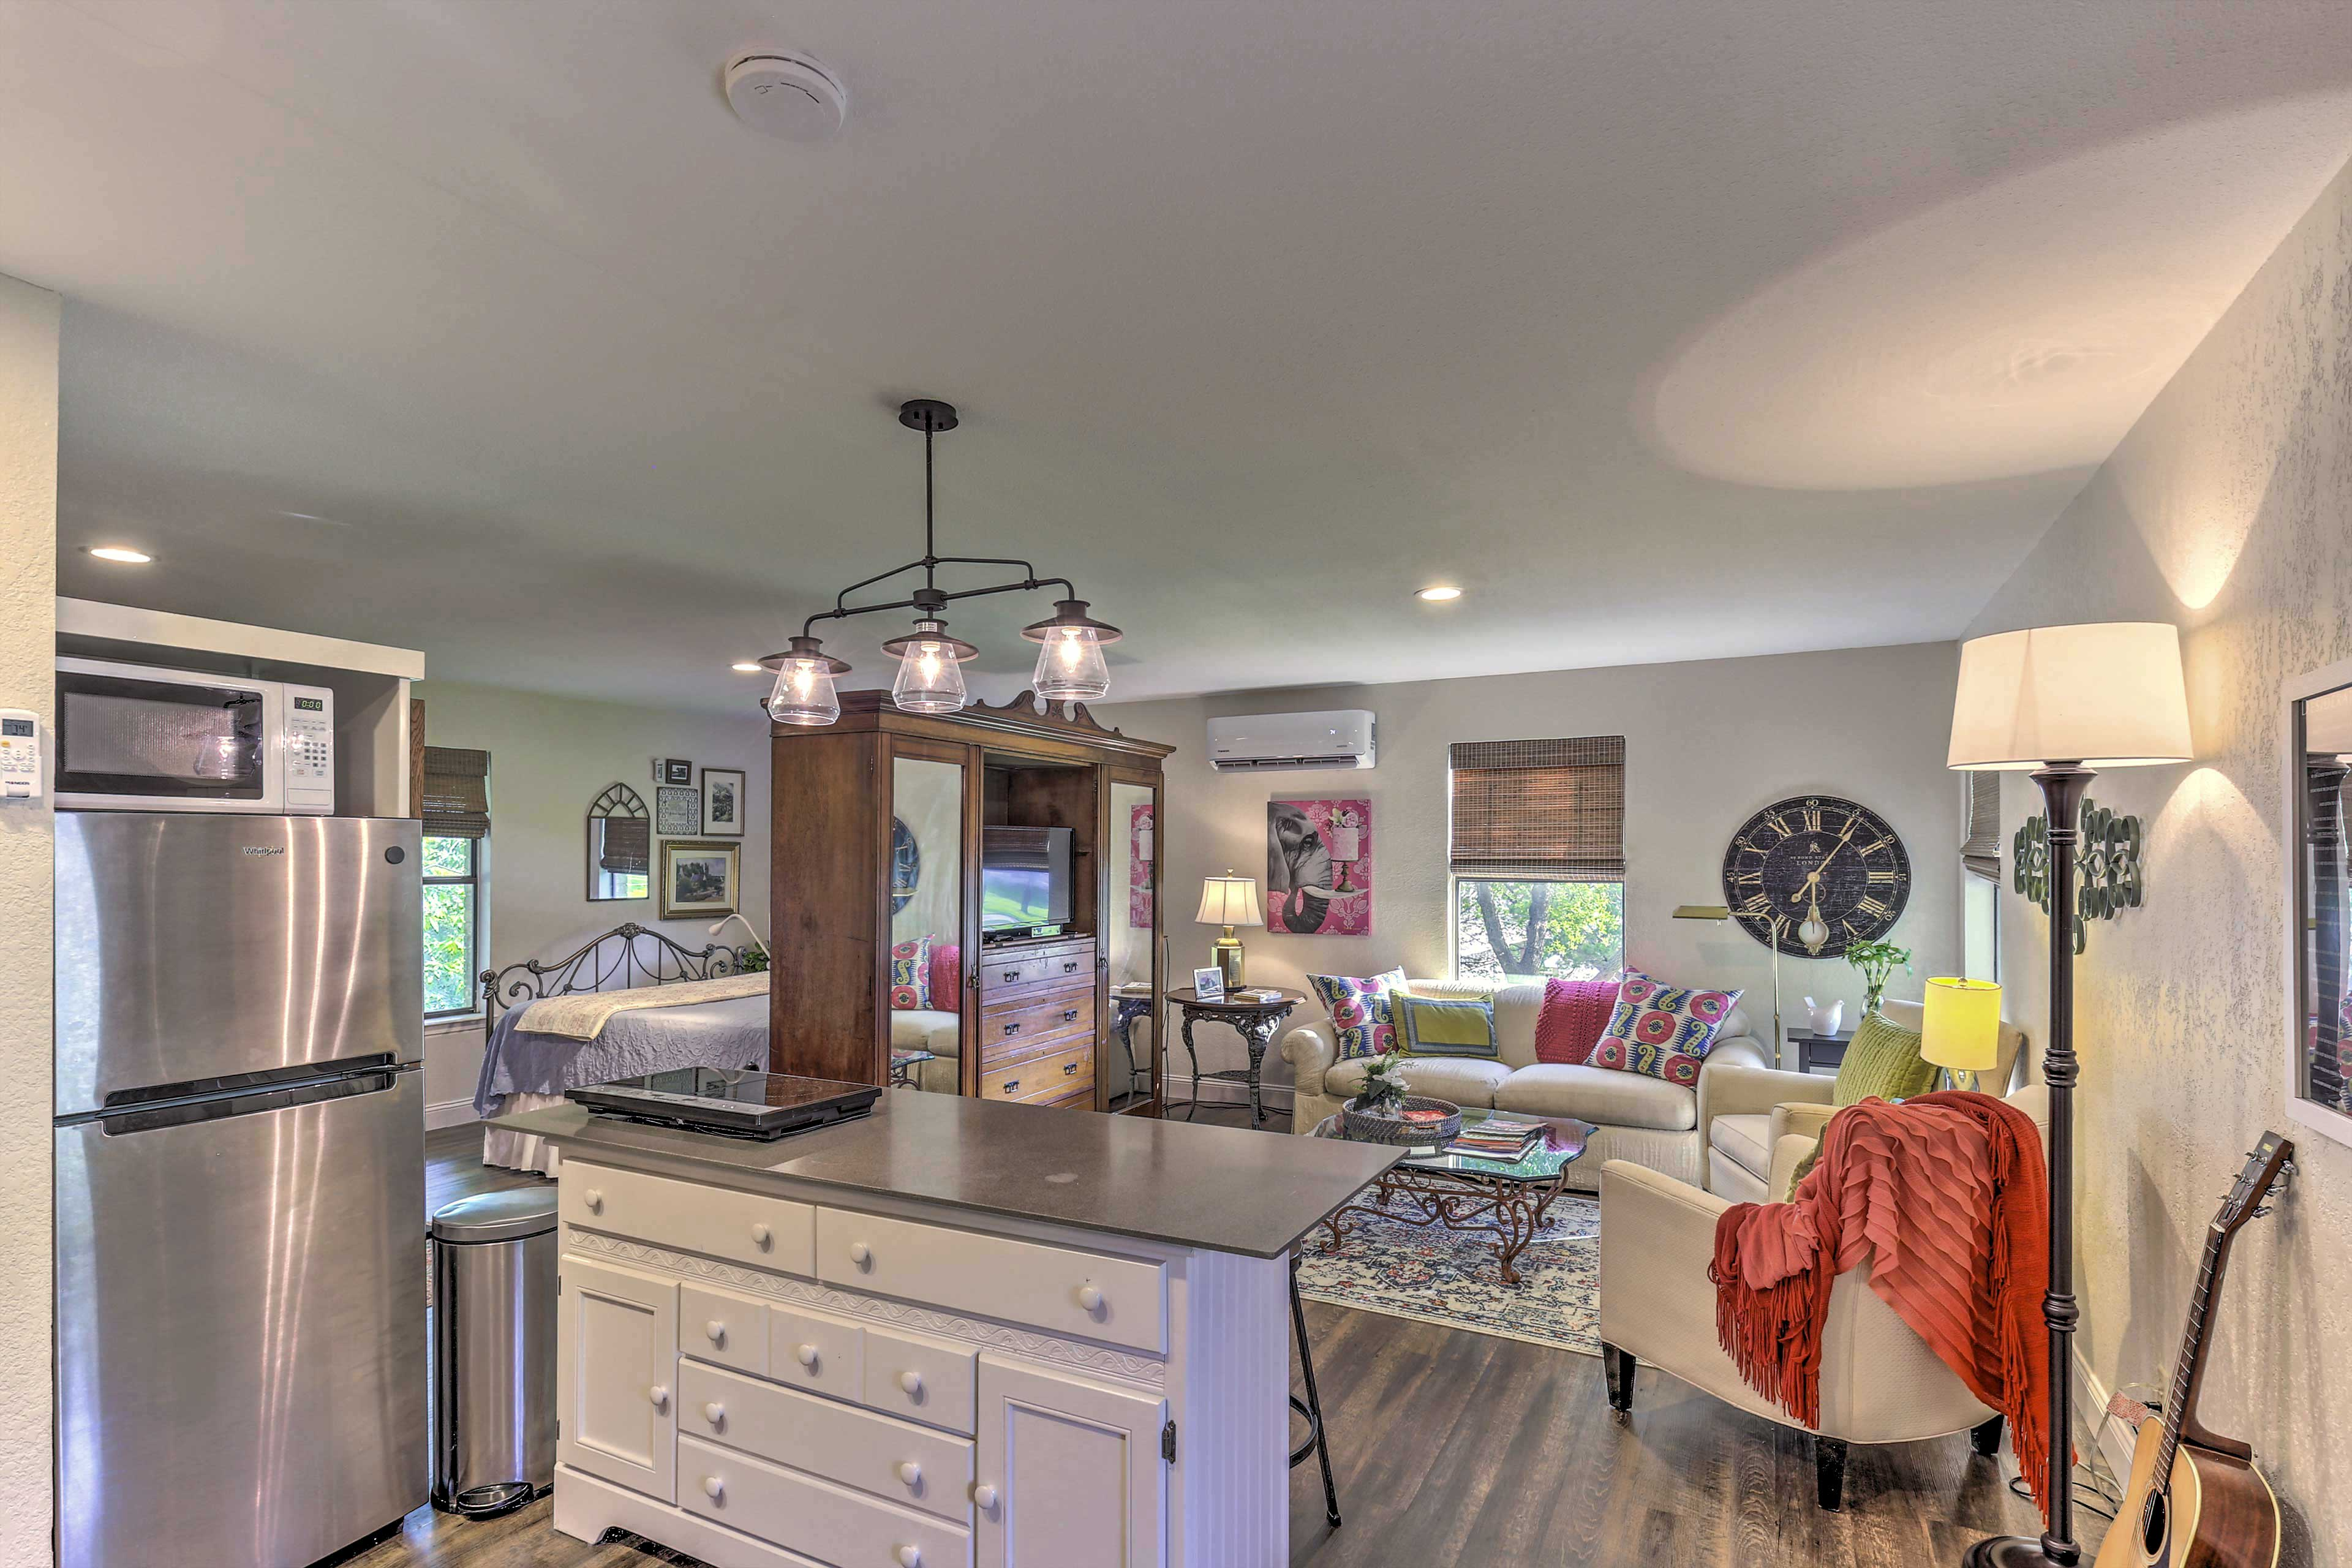 Kitchen | Well-Equipped w/ Cooking Basics